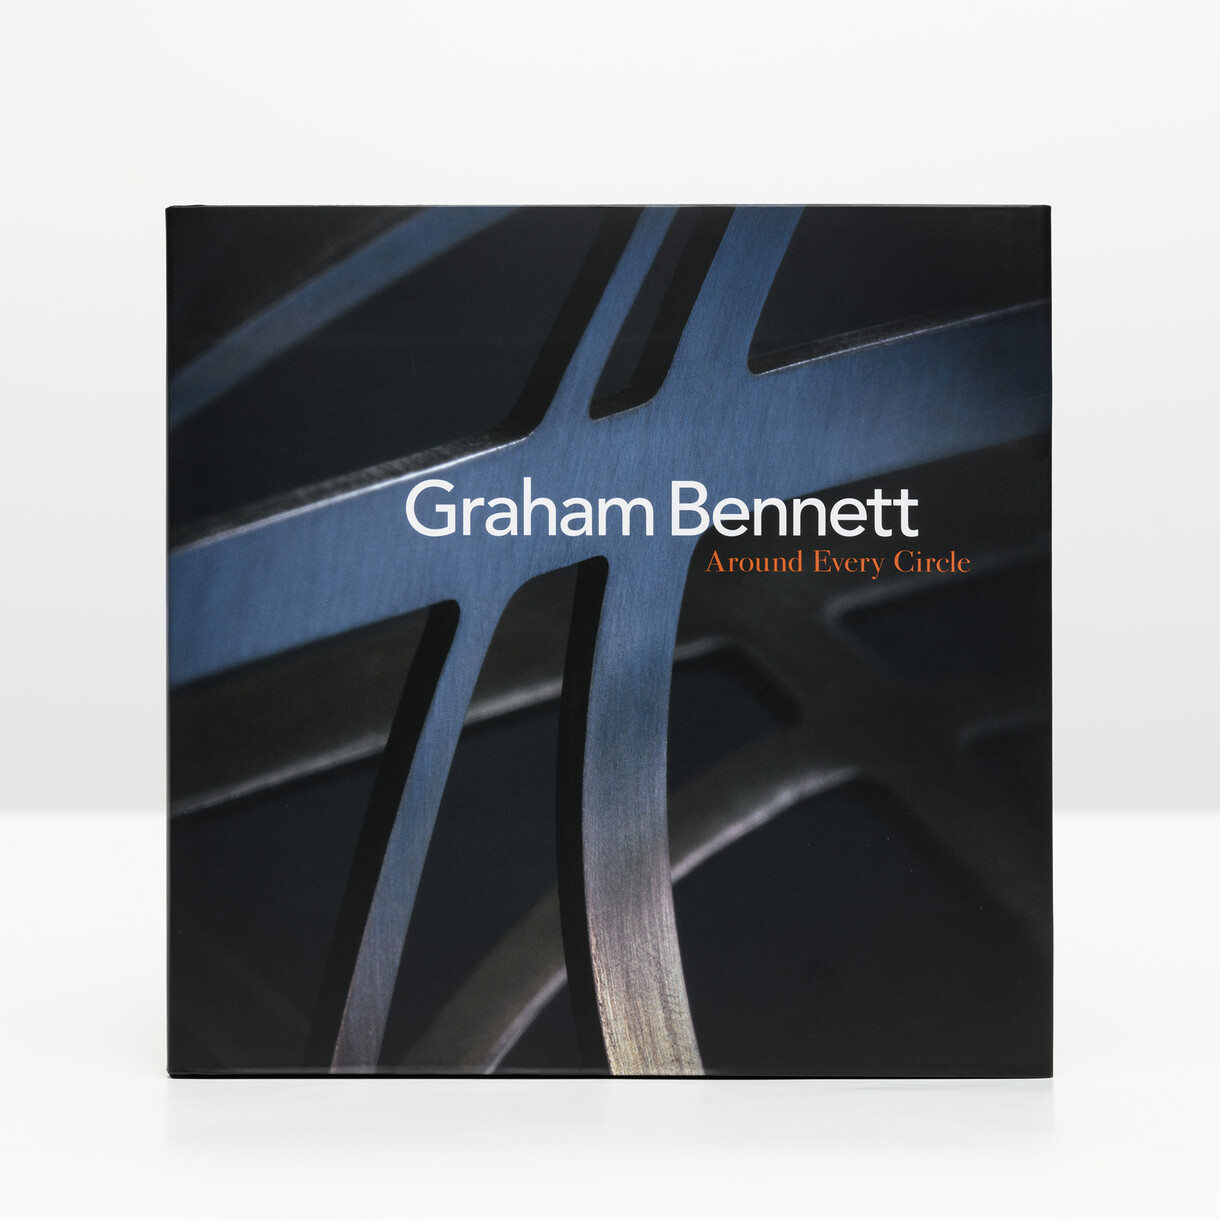 Graham Bennett: Around Every Circle